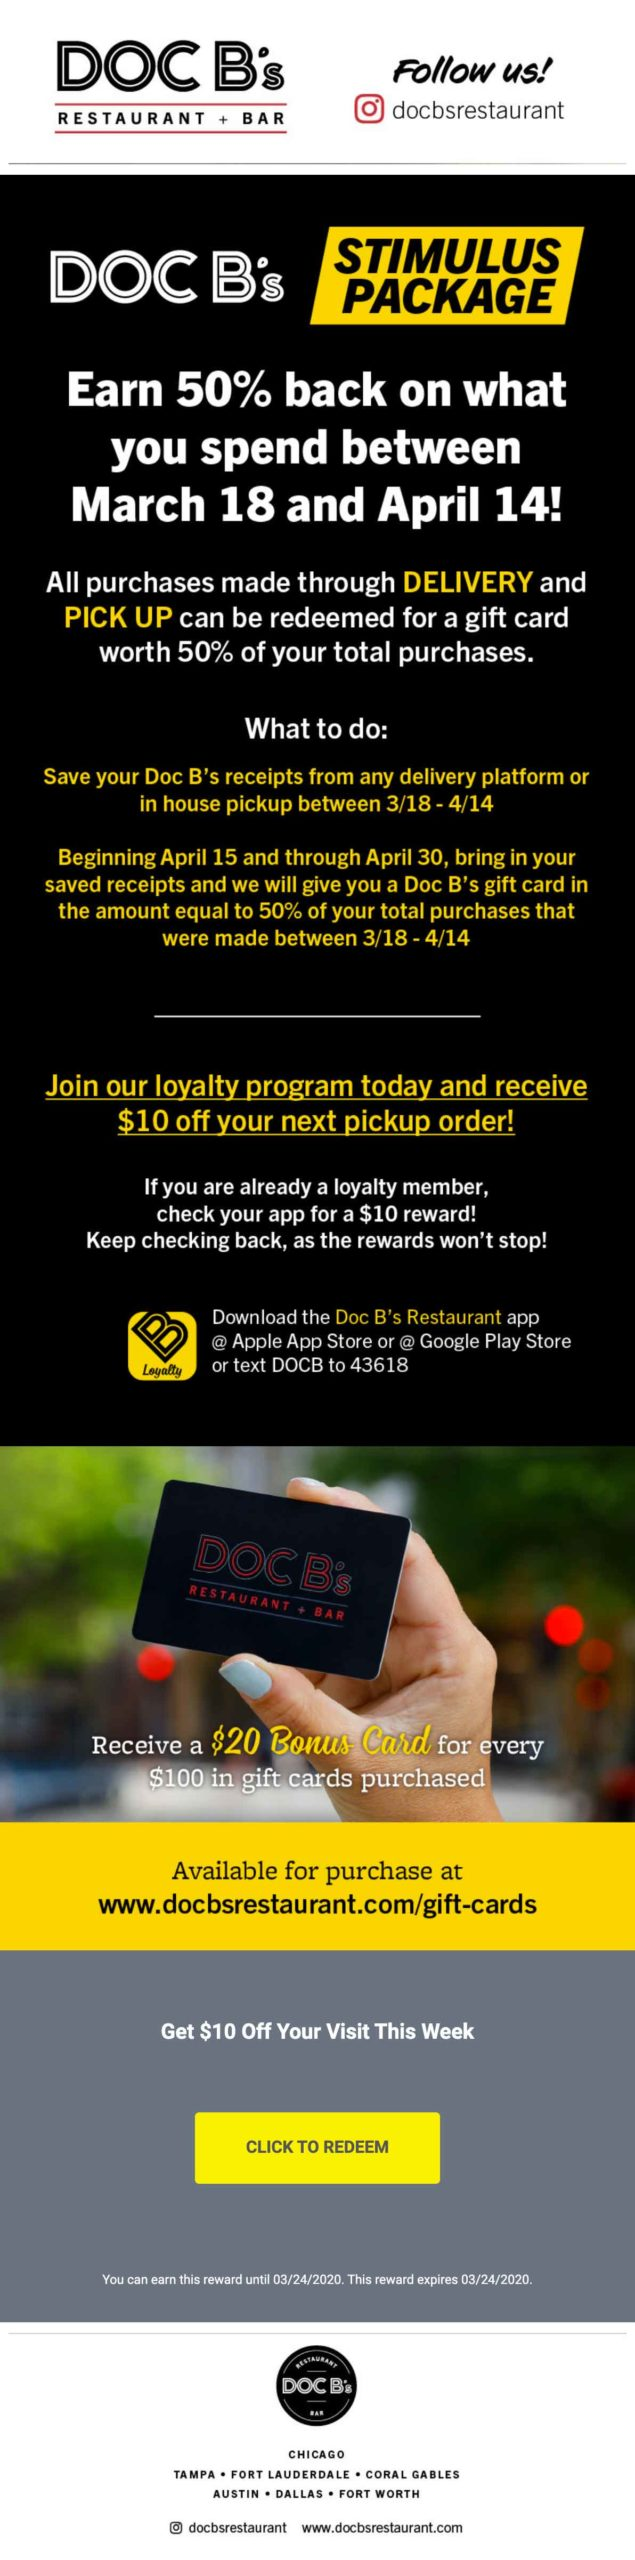 Doc B's Restaurant Earn 50% Back On Your Purchases & $10 Off email